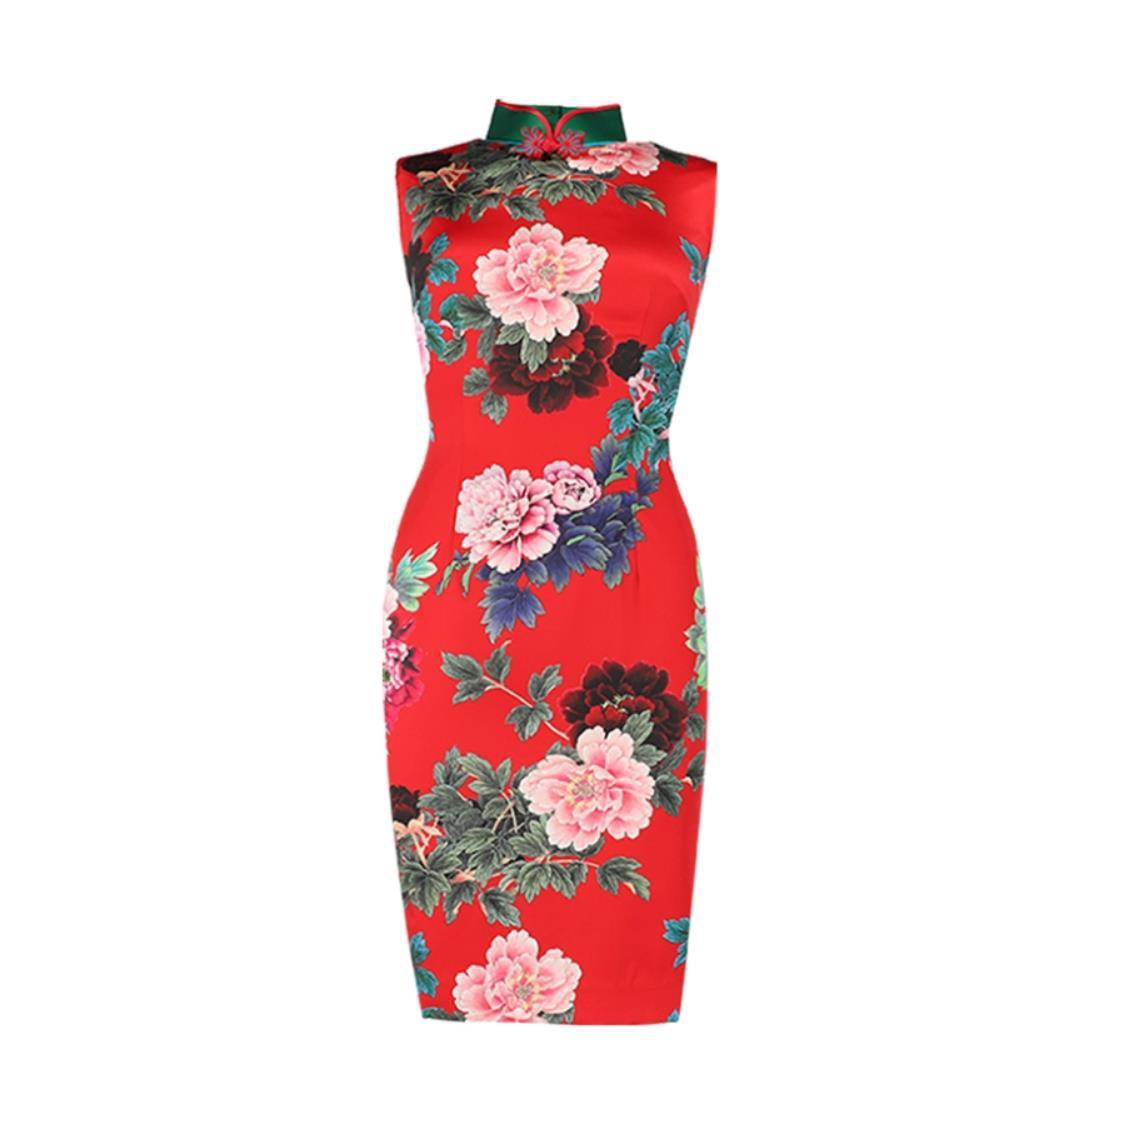 Red Peony Print Stretch Silk Cheongsam with Handmade Bi-color binding  Chinese button